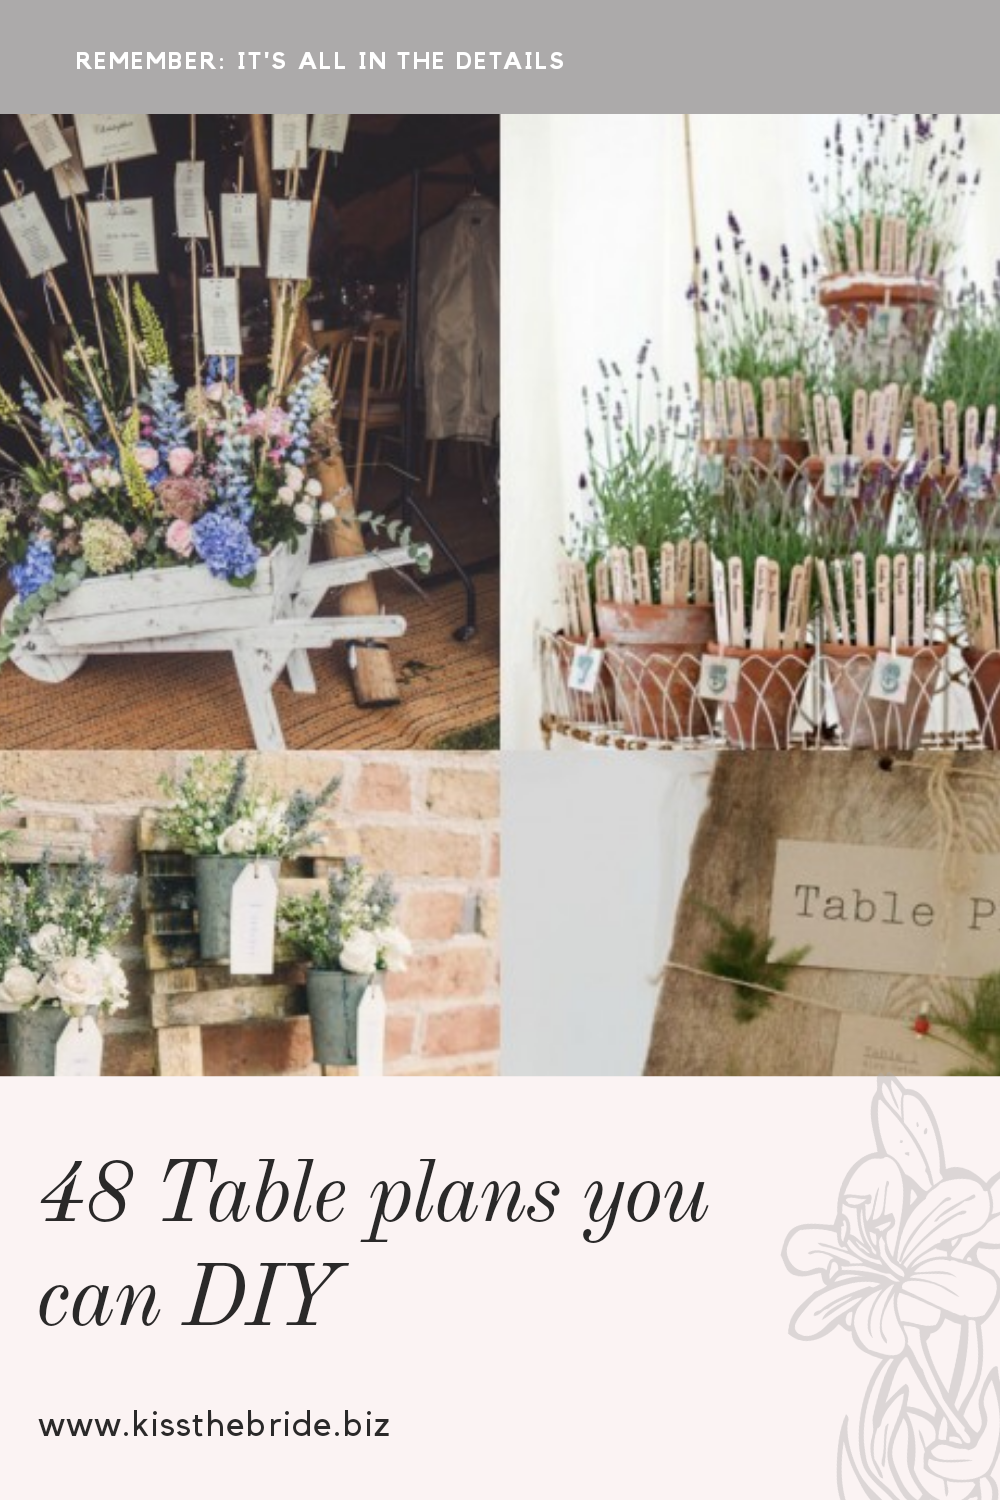 48 Table plans you can DIY